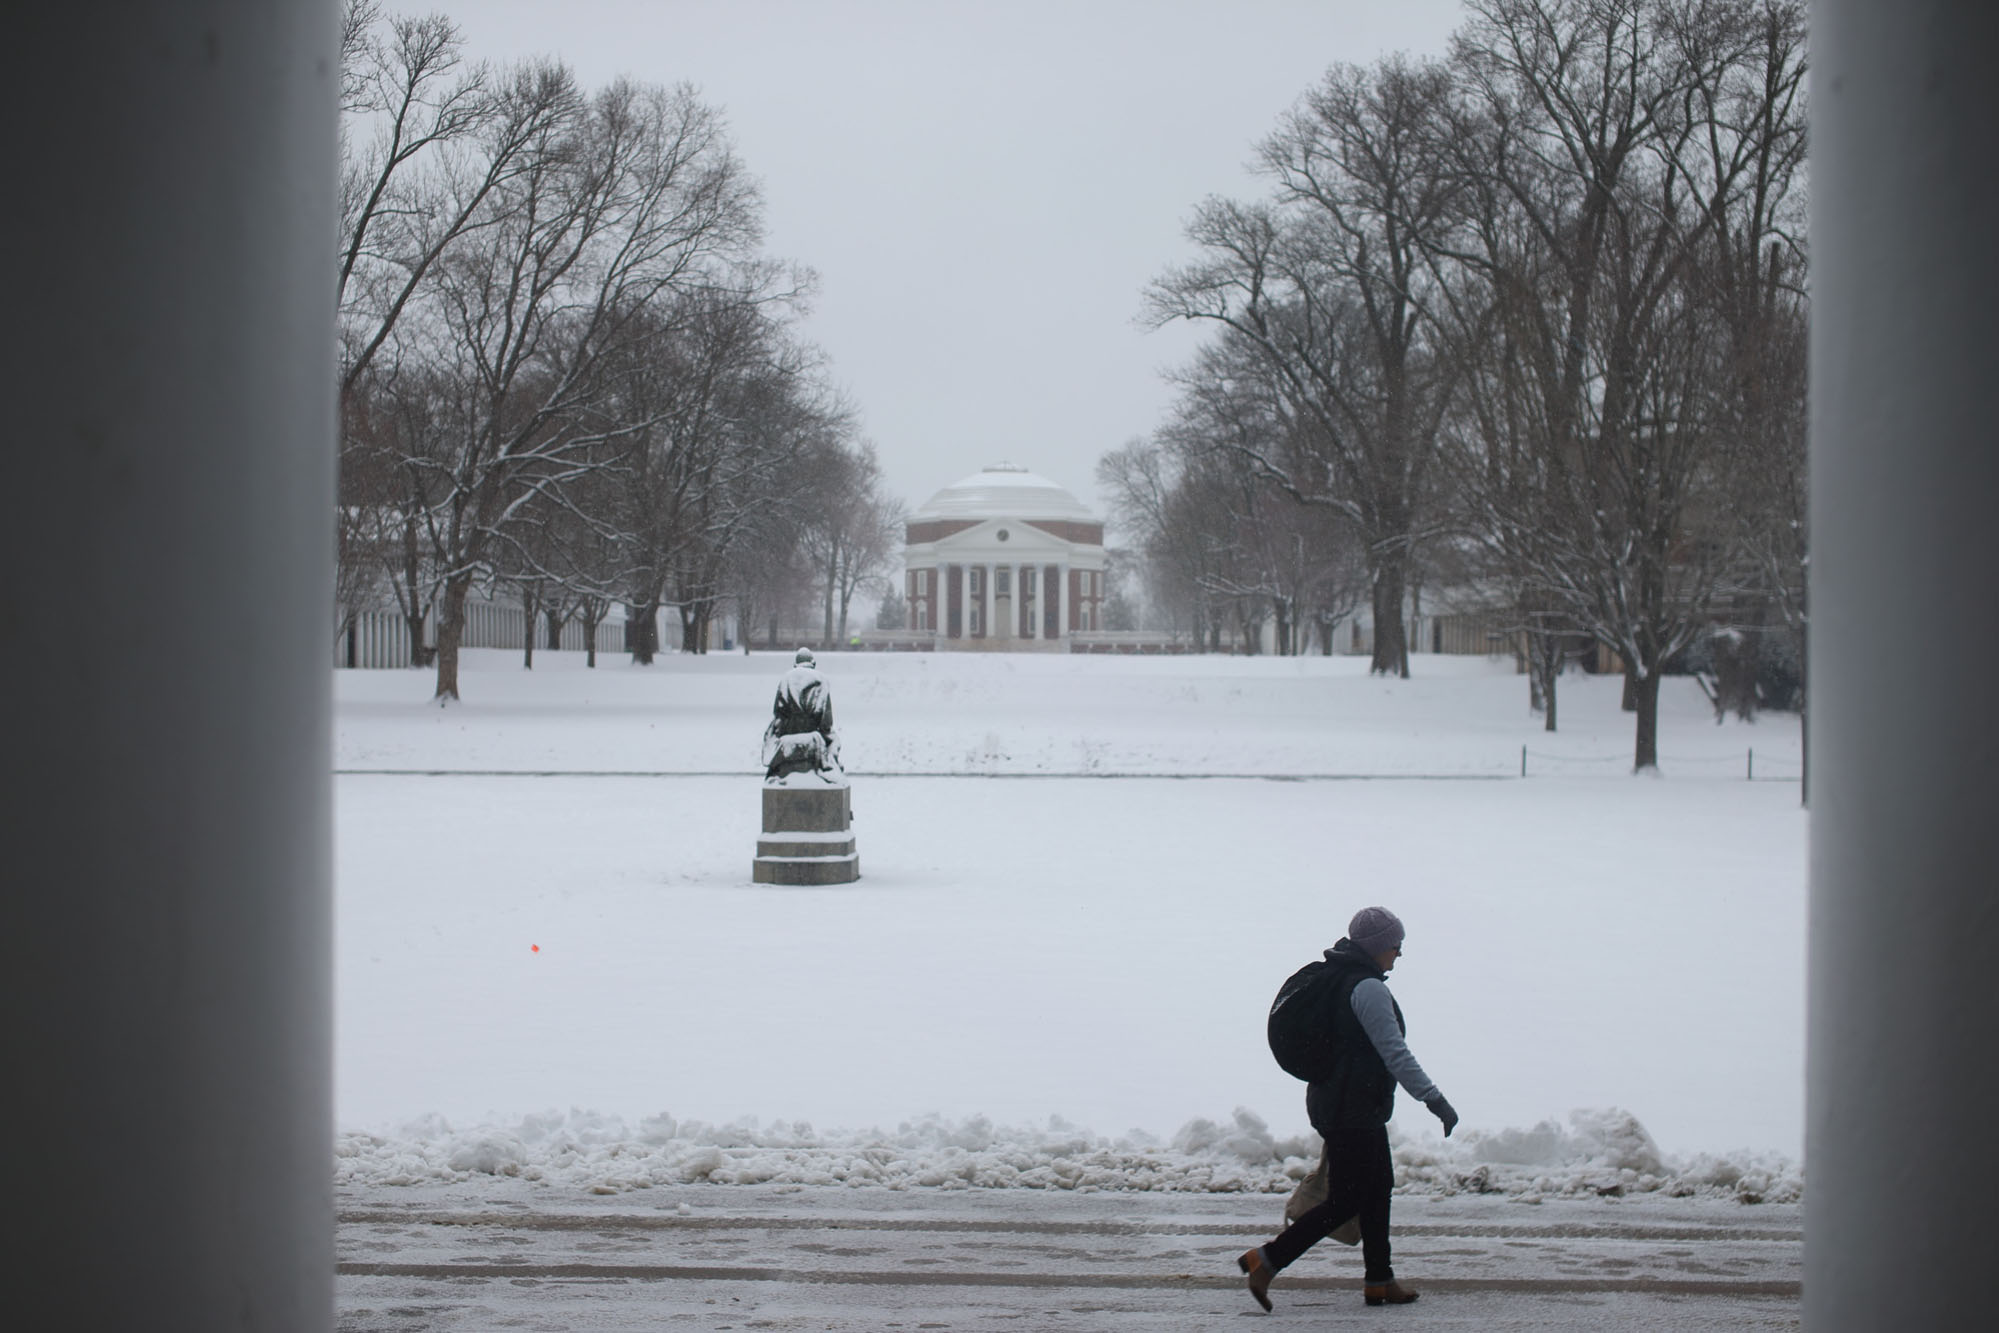 Student walking on a snowy lawn